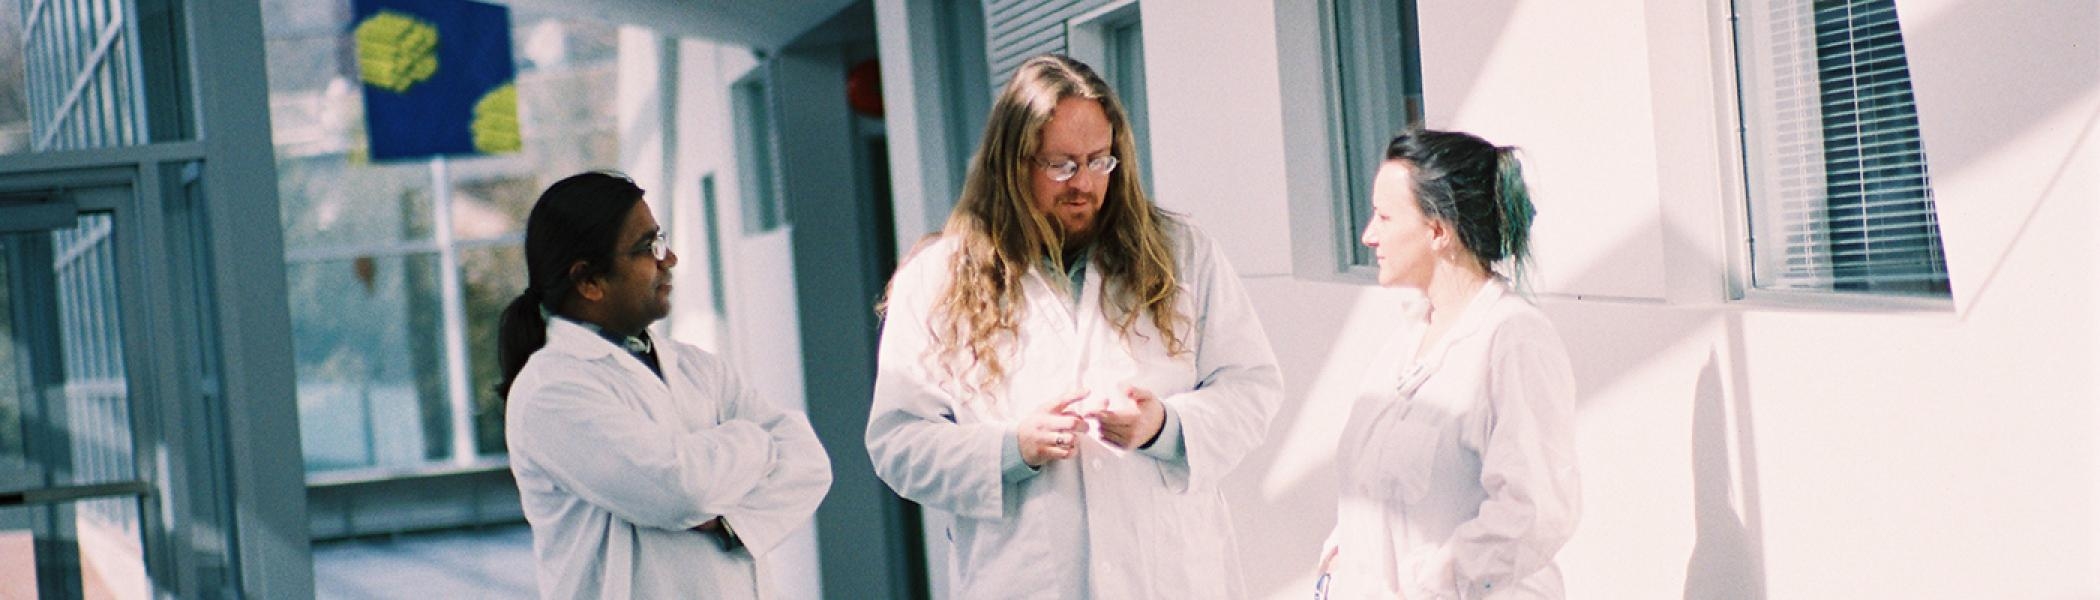 Chemistry Professor with students in hallway of Chemical Sciences Building